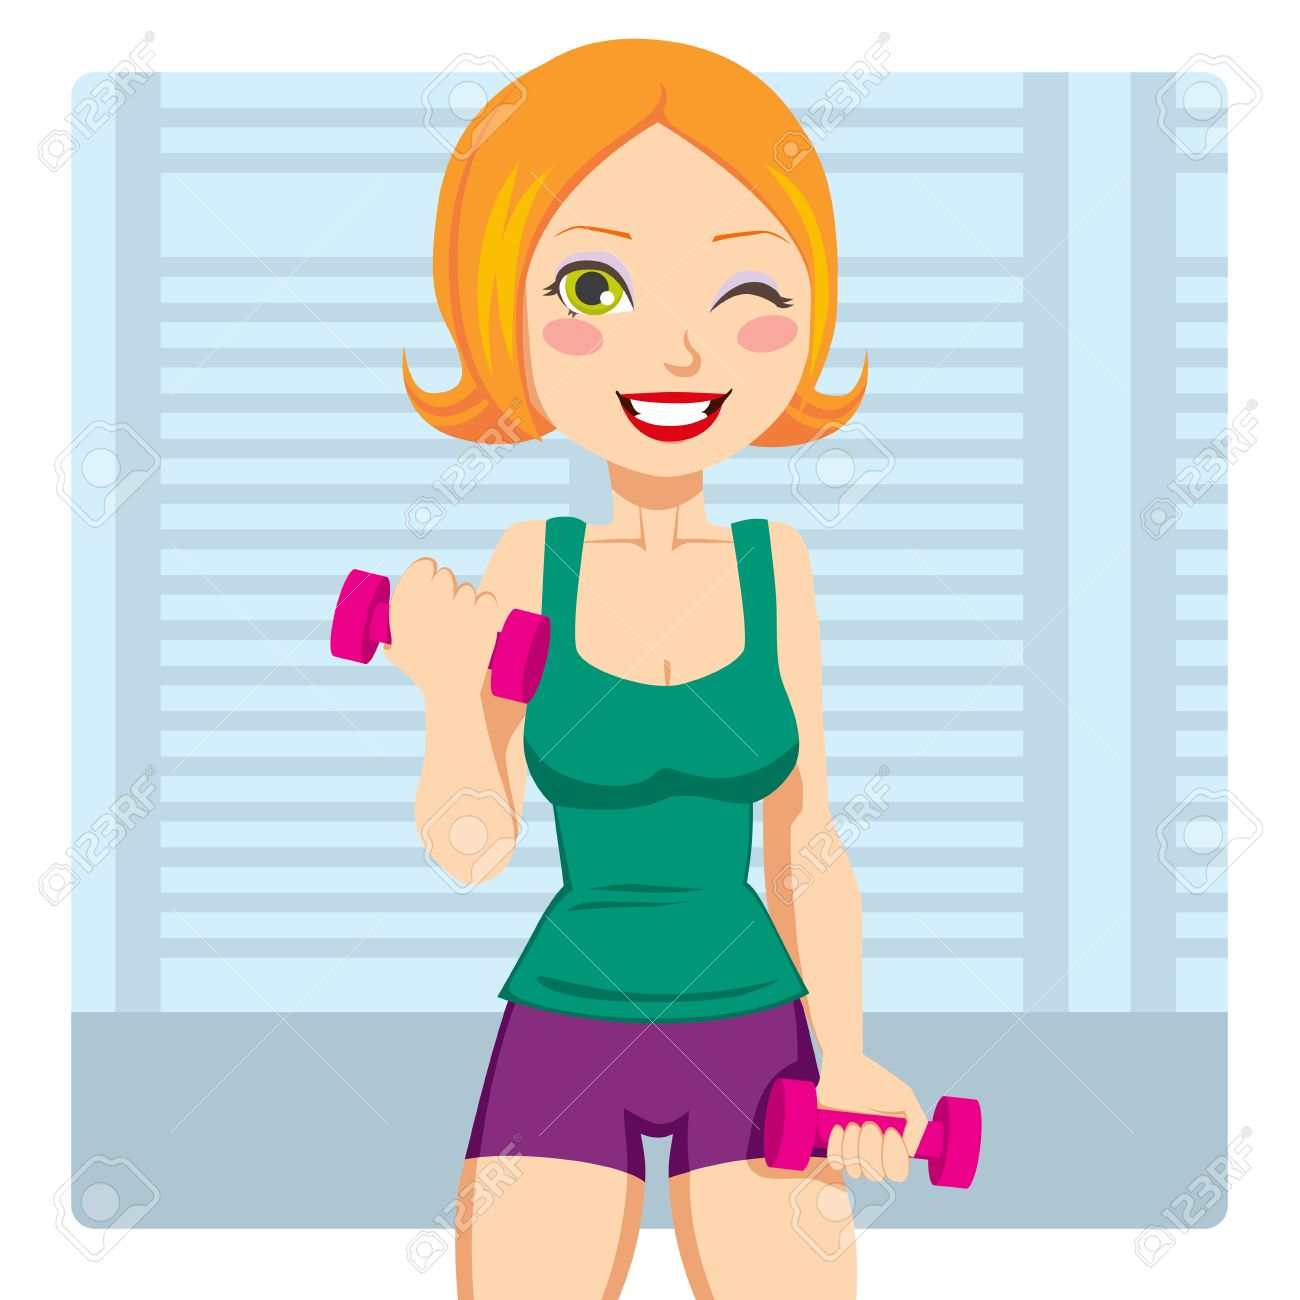 Free Girl Exercising Cliparts, Download Free Clip Art, Free.